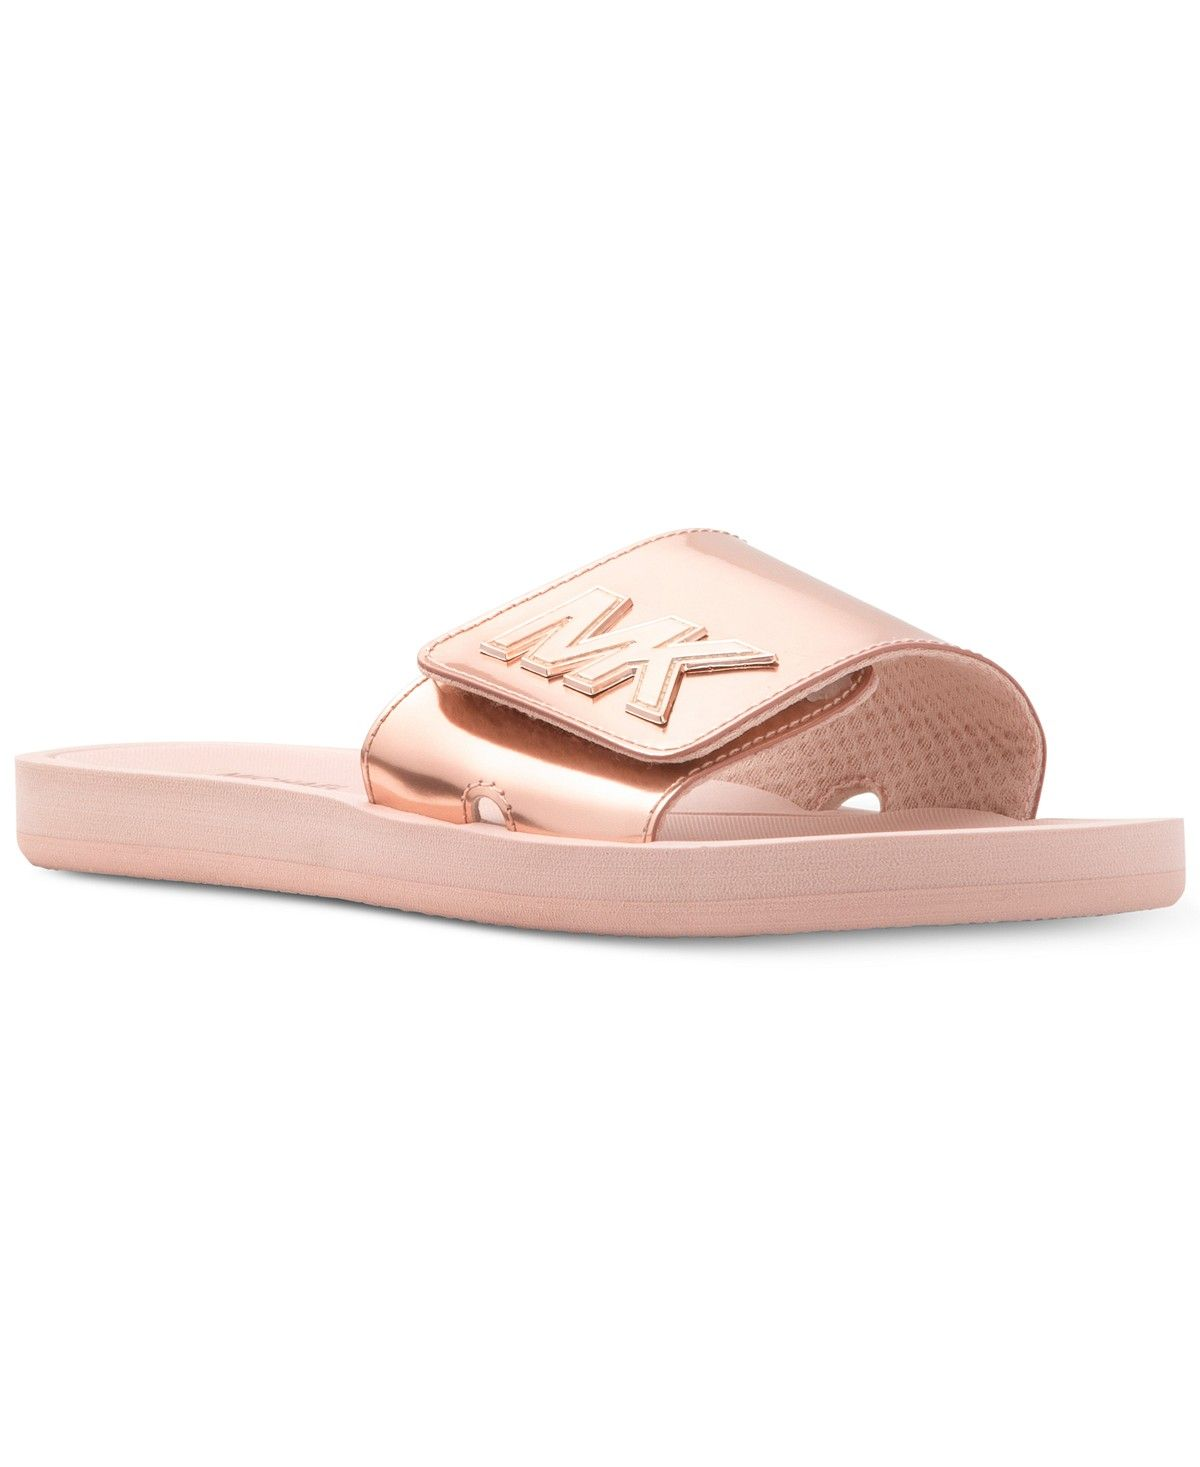 cb1fac95bf9 MICHAEL Michael Kors Pool Slide Sandals - All Women s Shoes - Shoes - Macy s